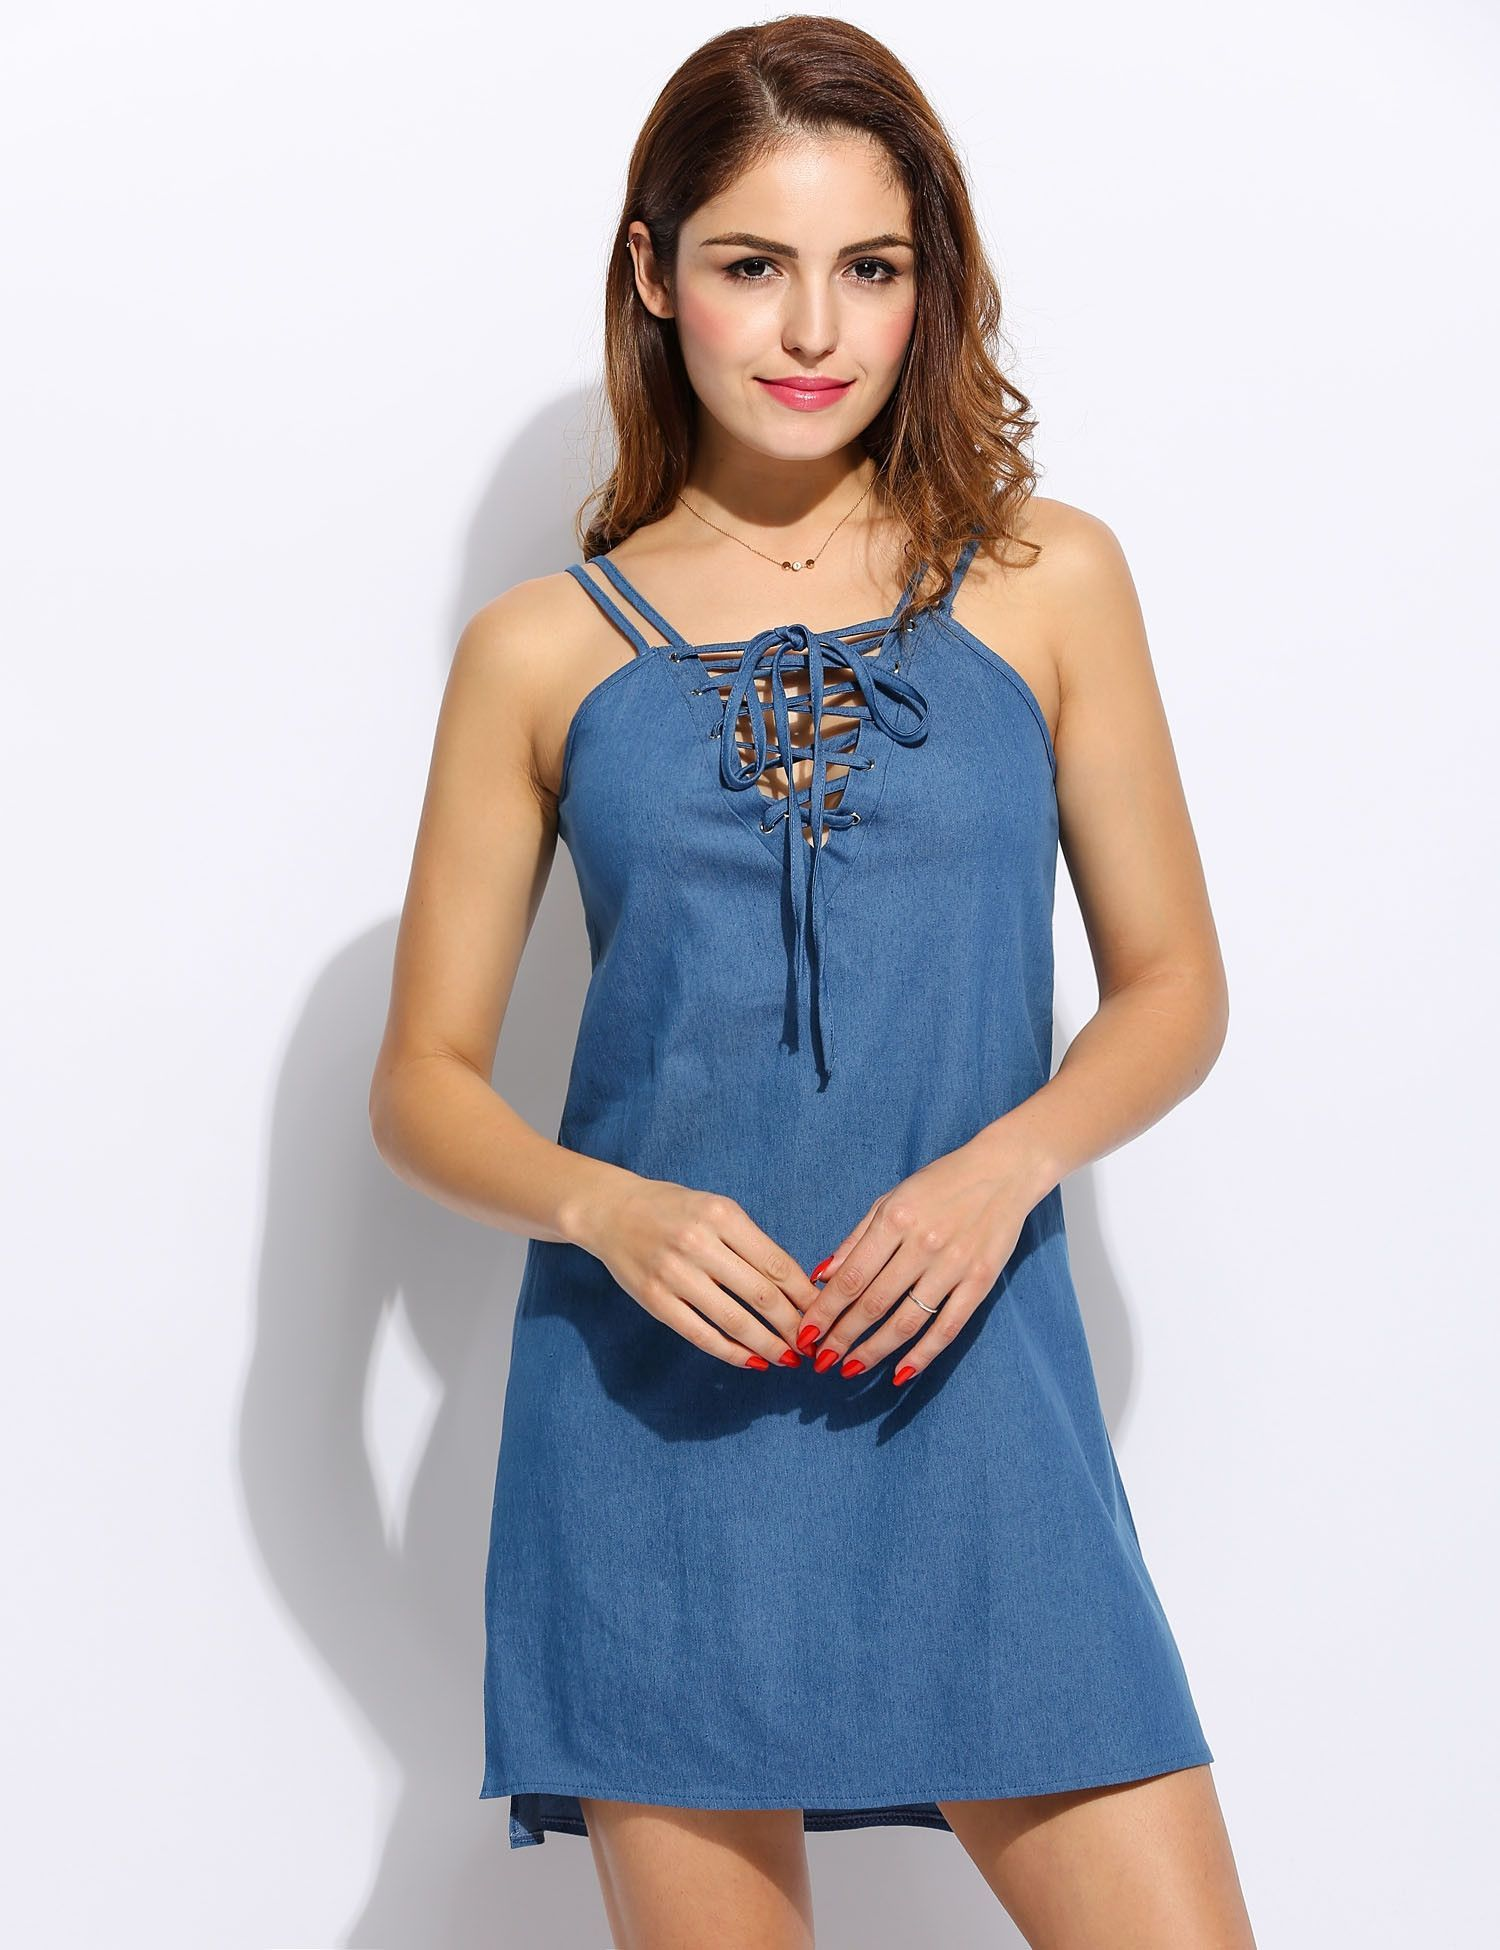 Green lace up dress  Women Cusaul Solid Front Laceup Spaghetti Straps Denim ALine Dress